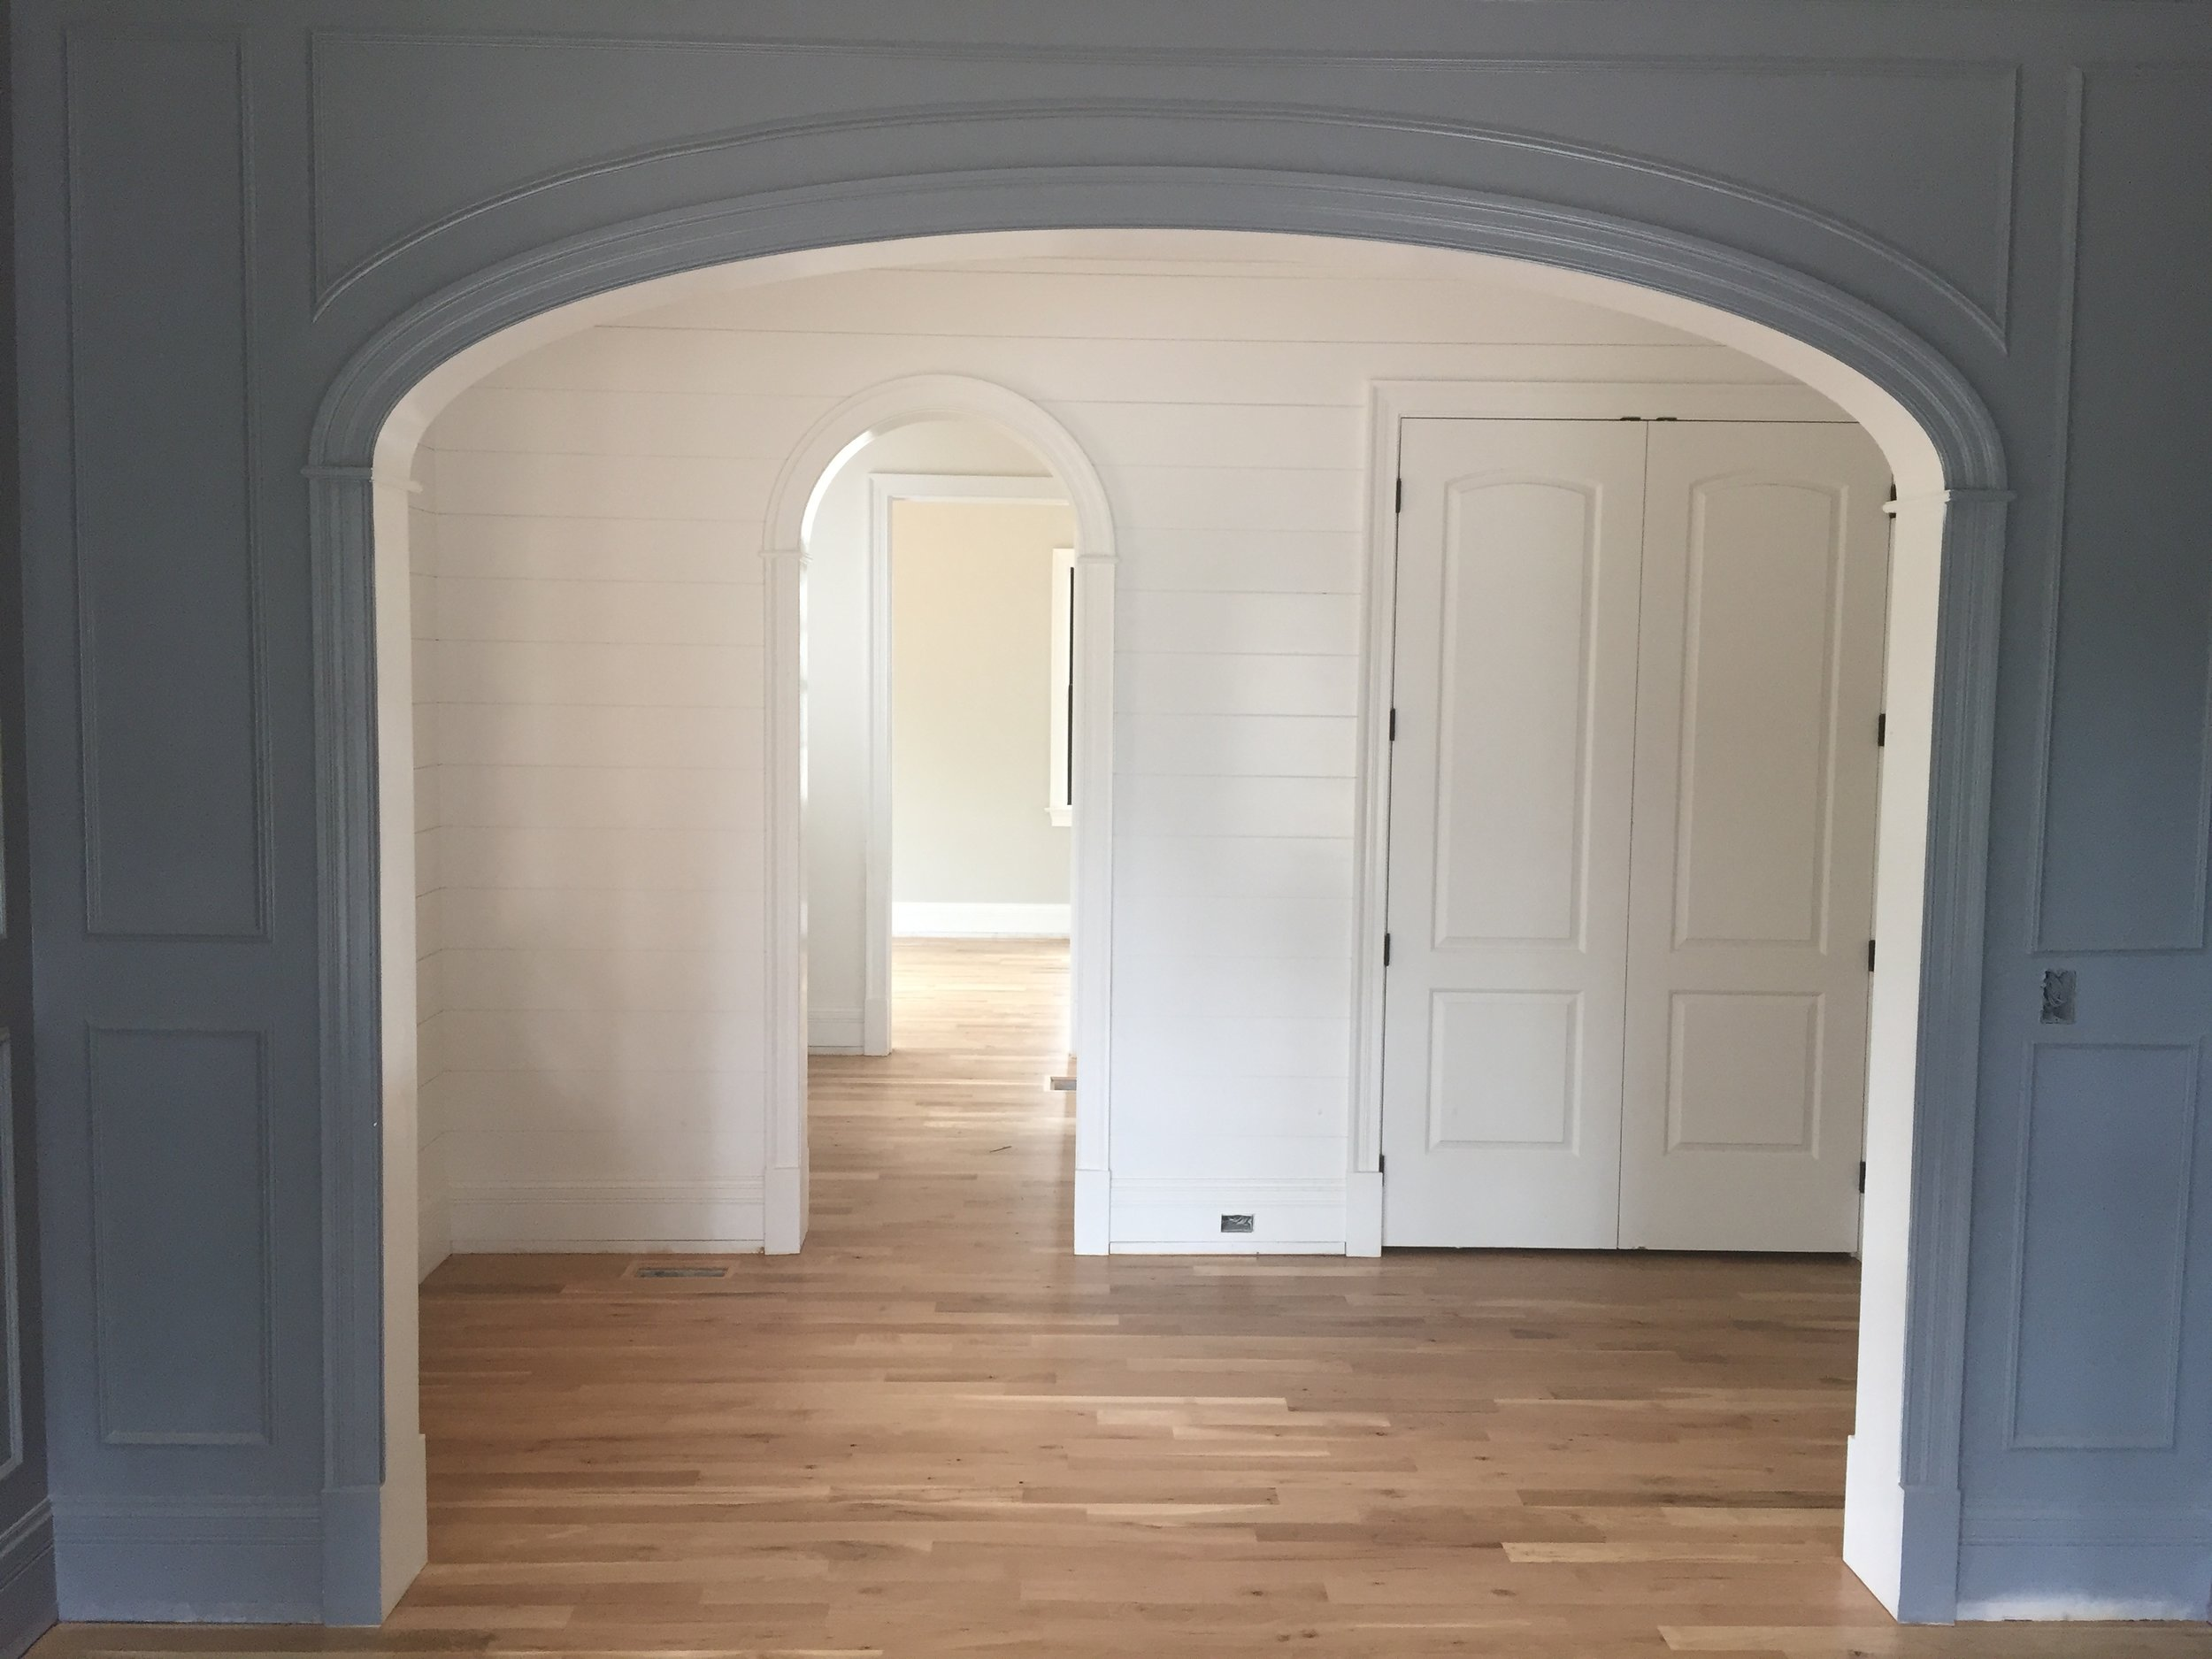 Dining room archway with arched wainscoting and shiplap walls